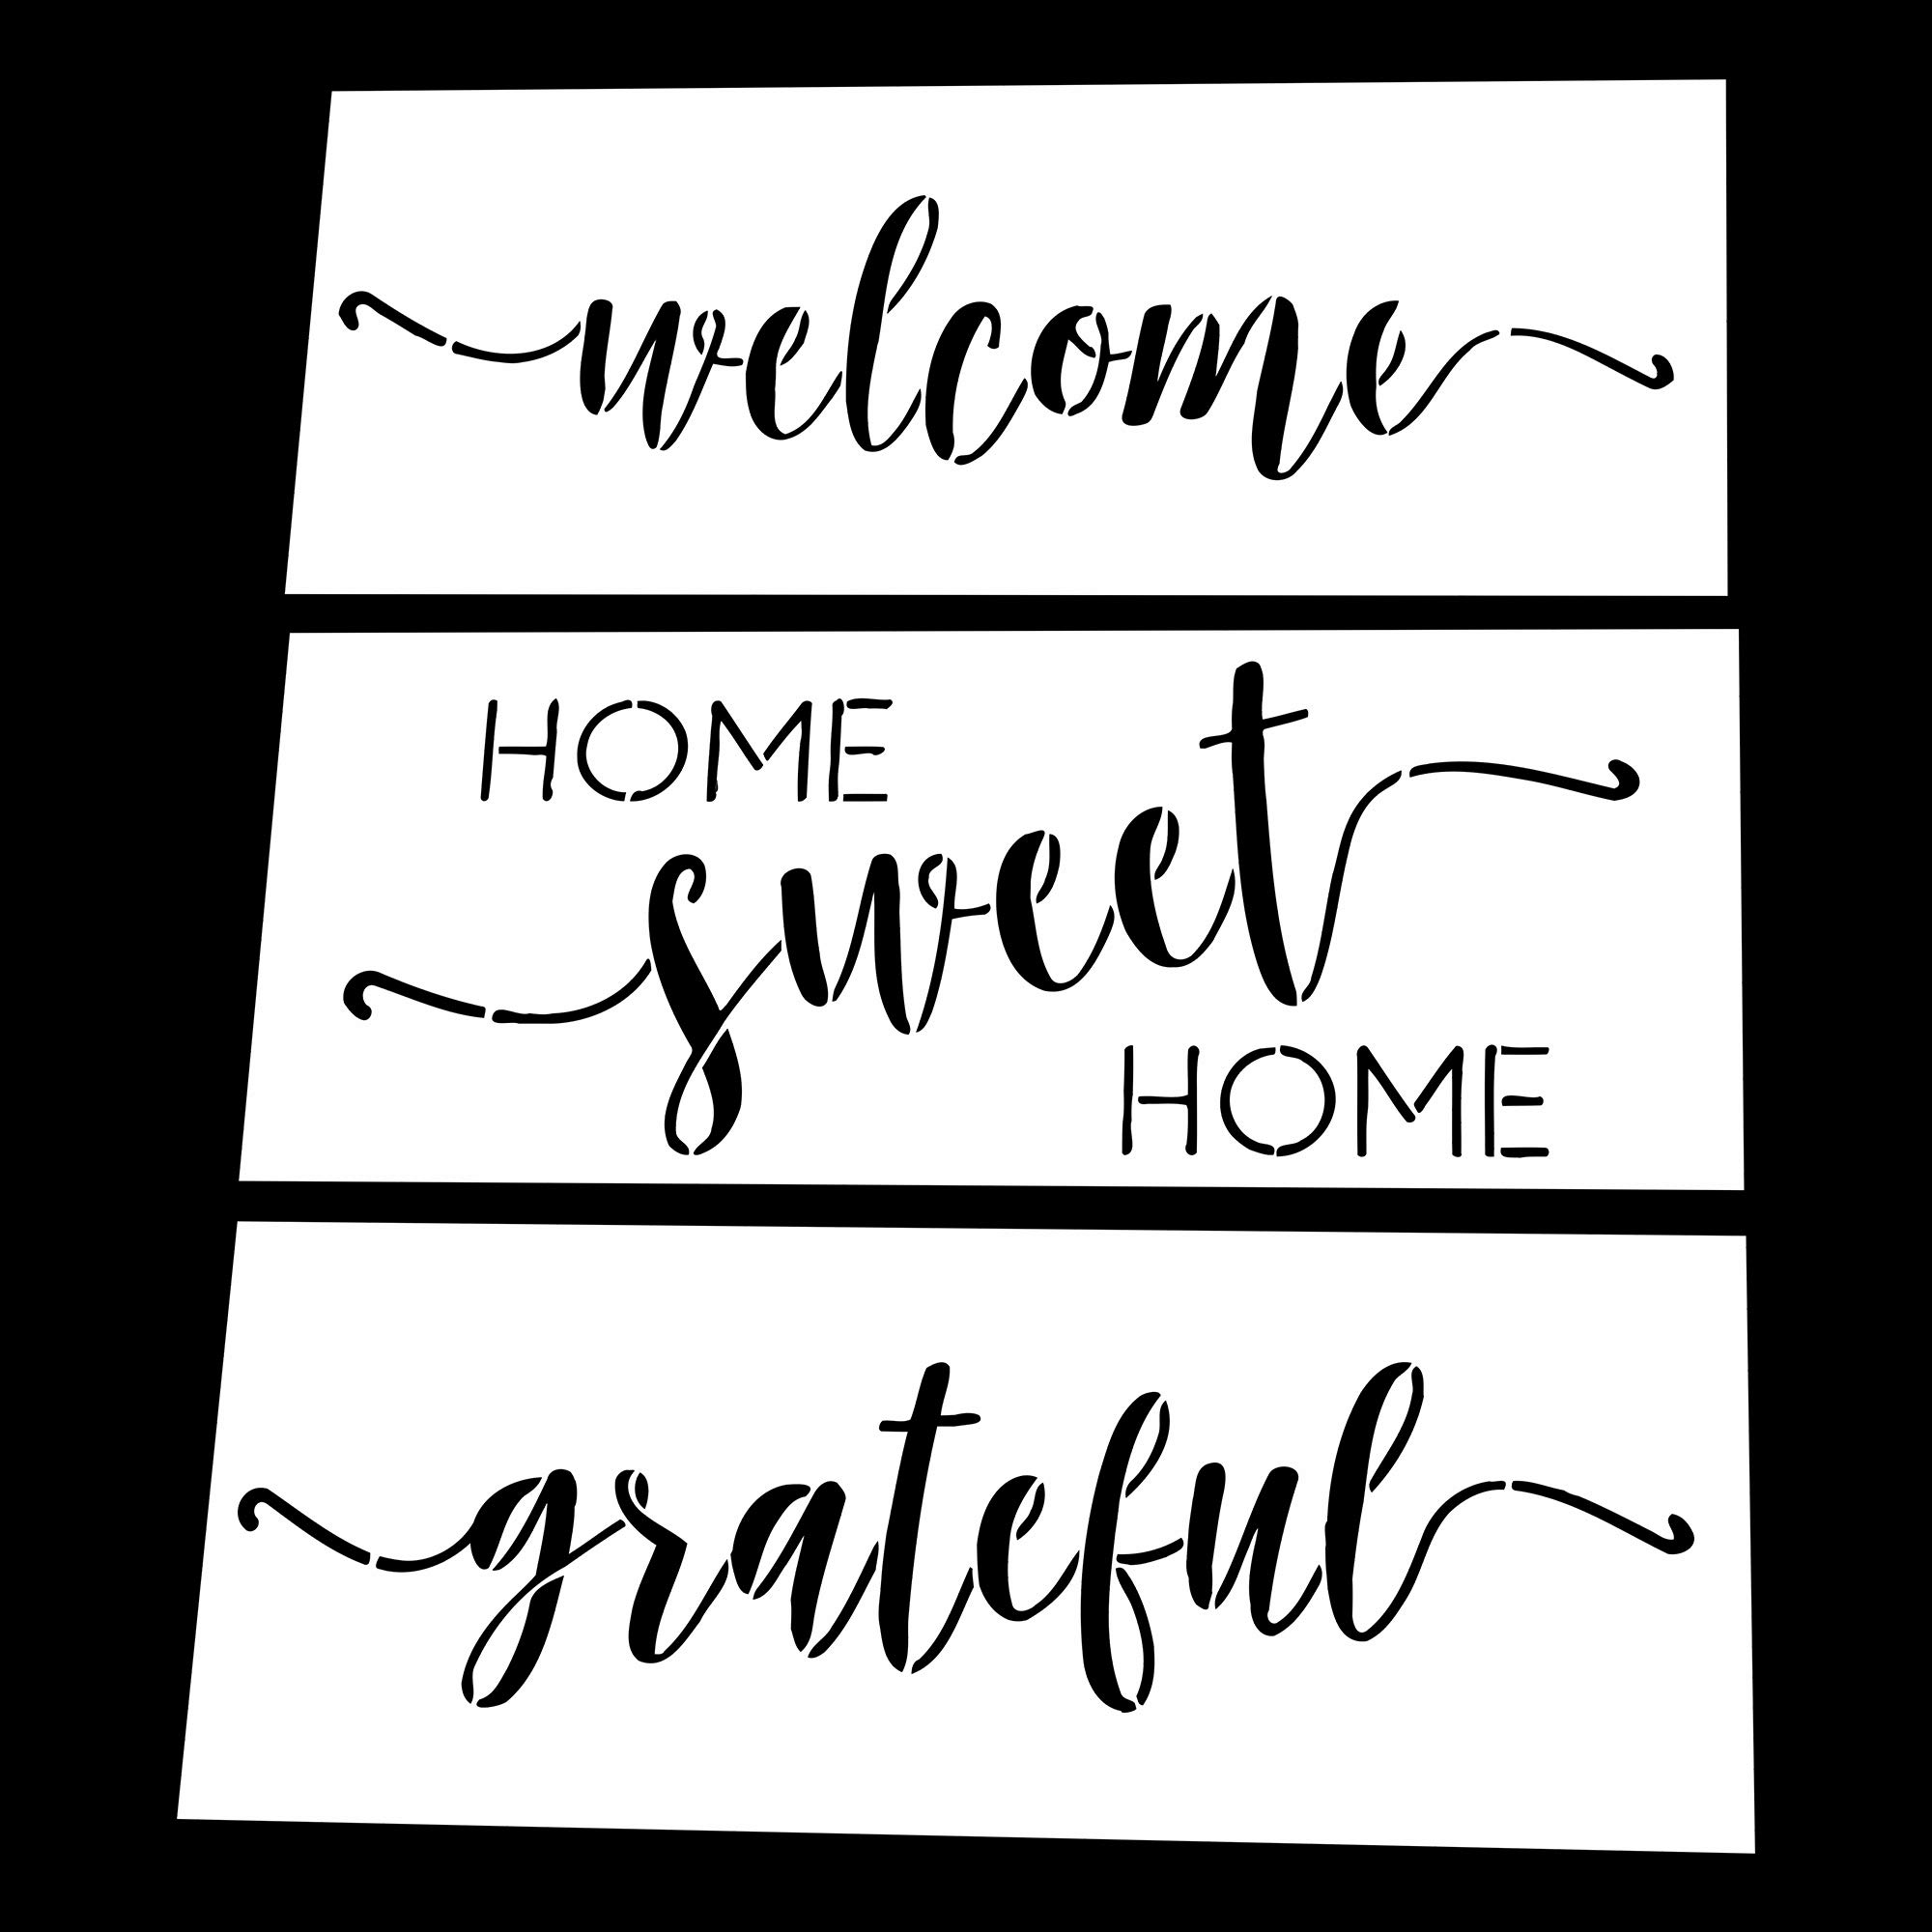 AZDIY Reusable Stencil Set - Home Sweet Home, Welcome, Grateful Stencils - Word Stencils for Painting on Wood- Laser Cut Painting Stencil - for Home Décor & DIY Projects by AZDIY